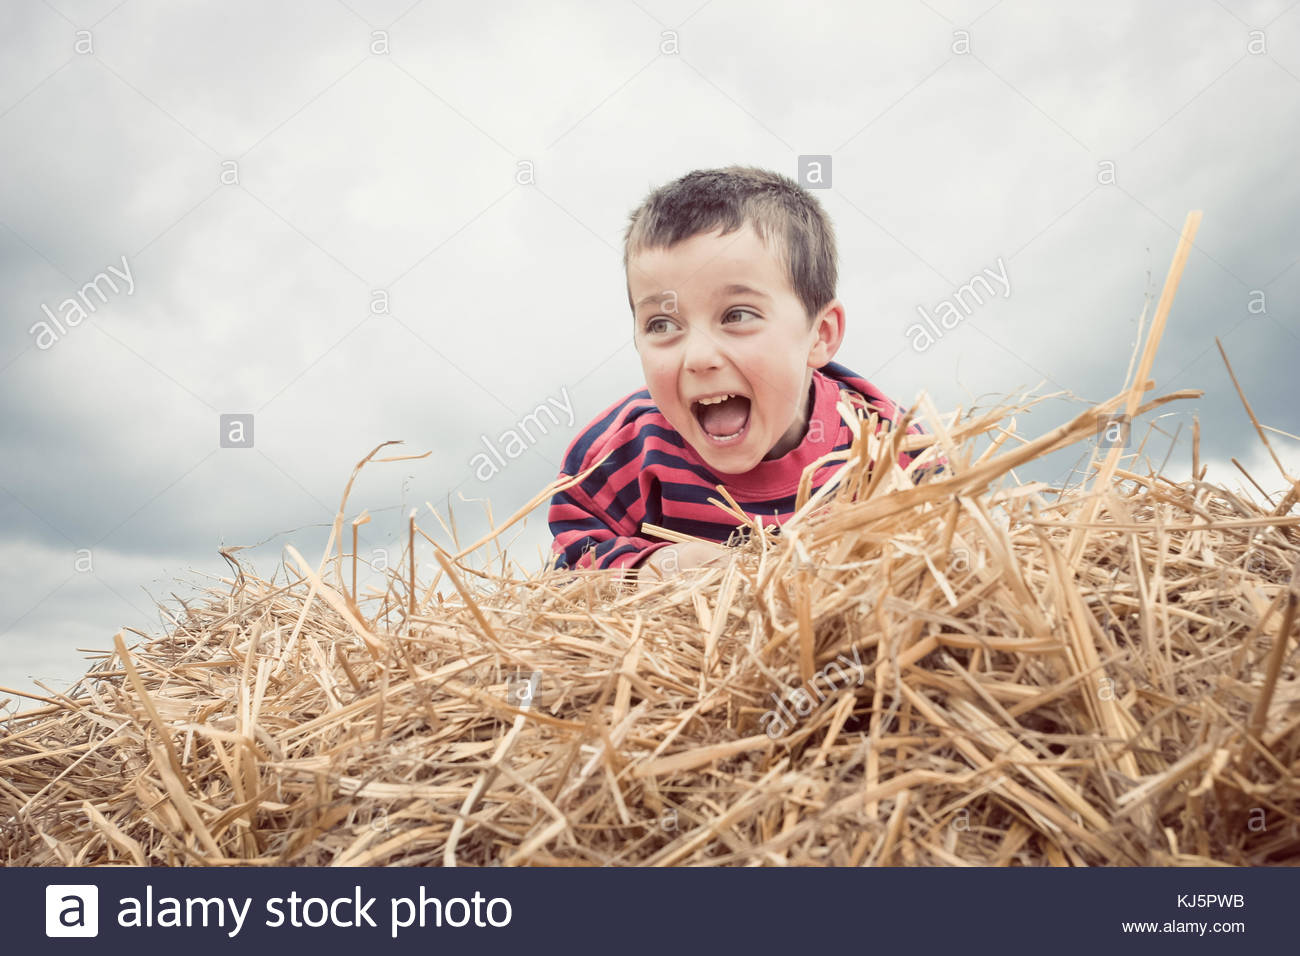 Playful boy on the top of a haystack - Stock Image